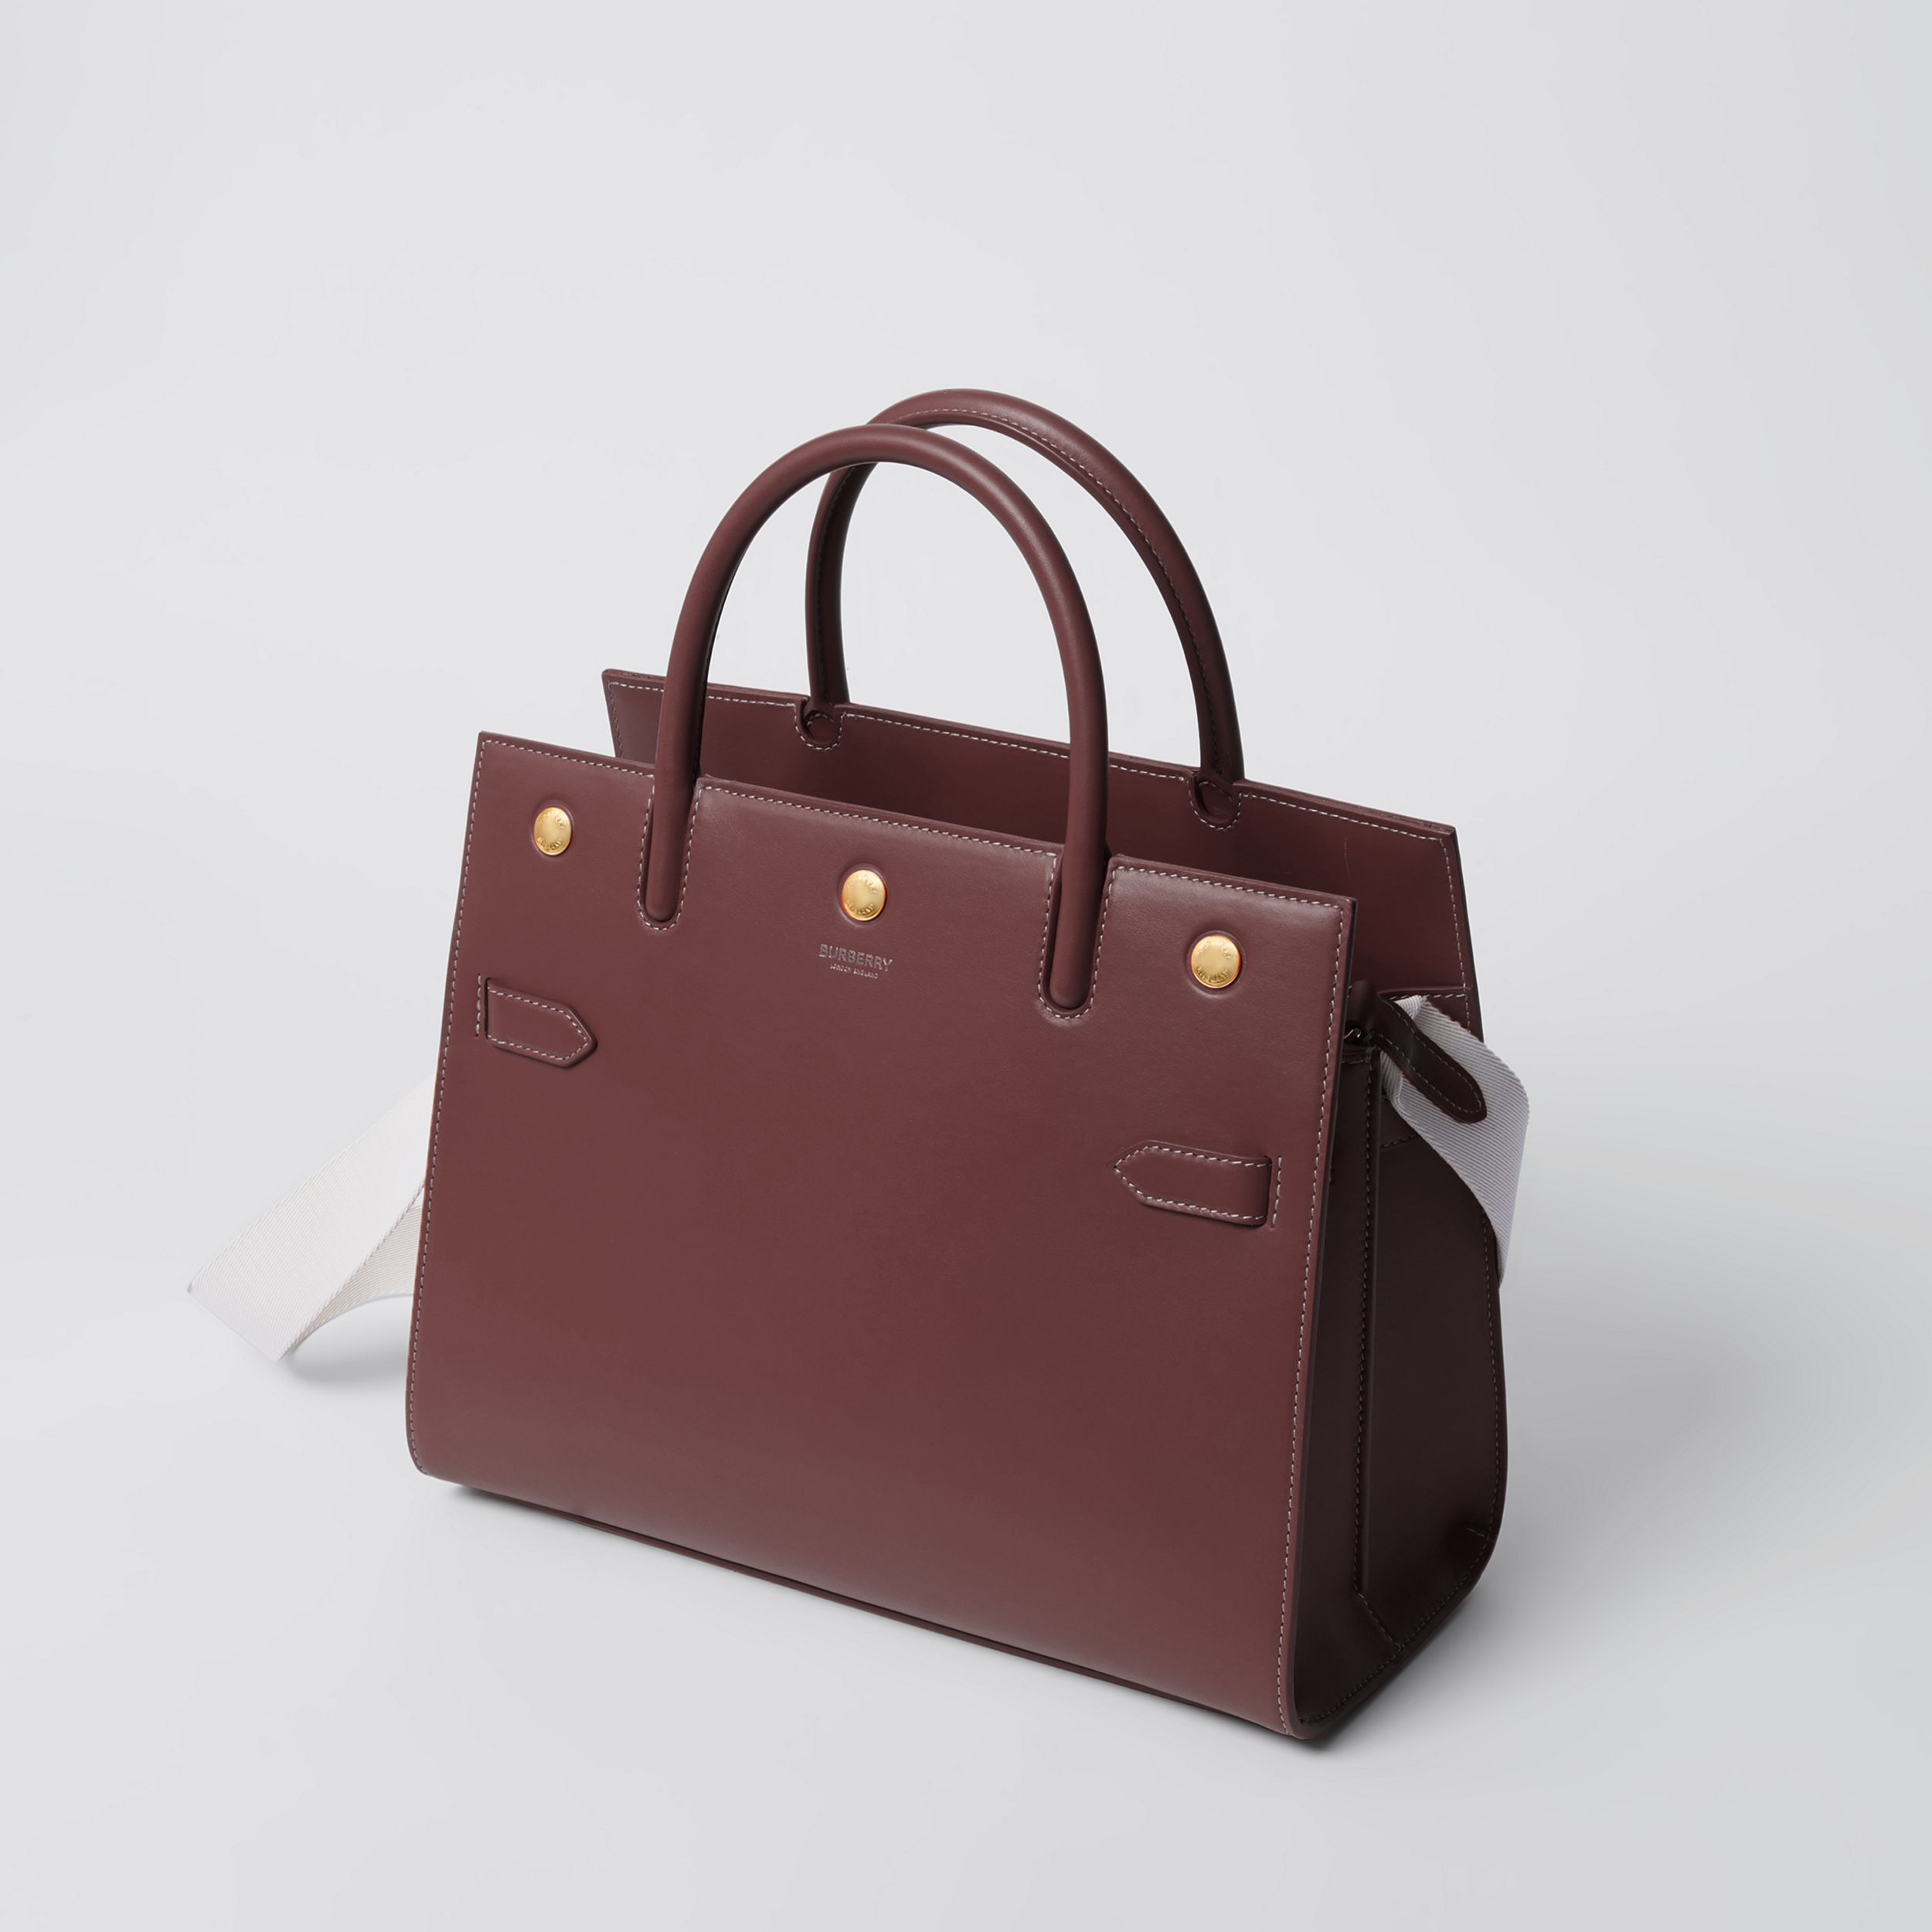 Medium Leather Two-handle Title Bag in Garnet - Women | Burberry Australia - 3